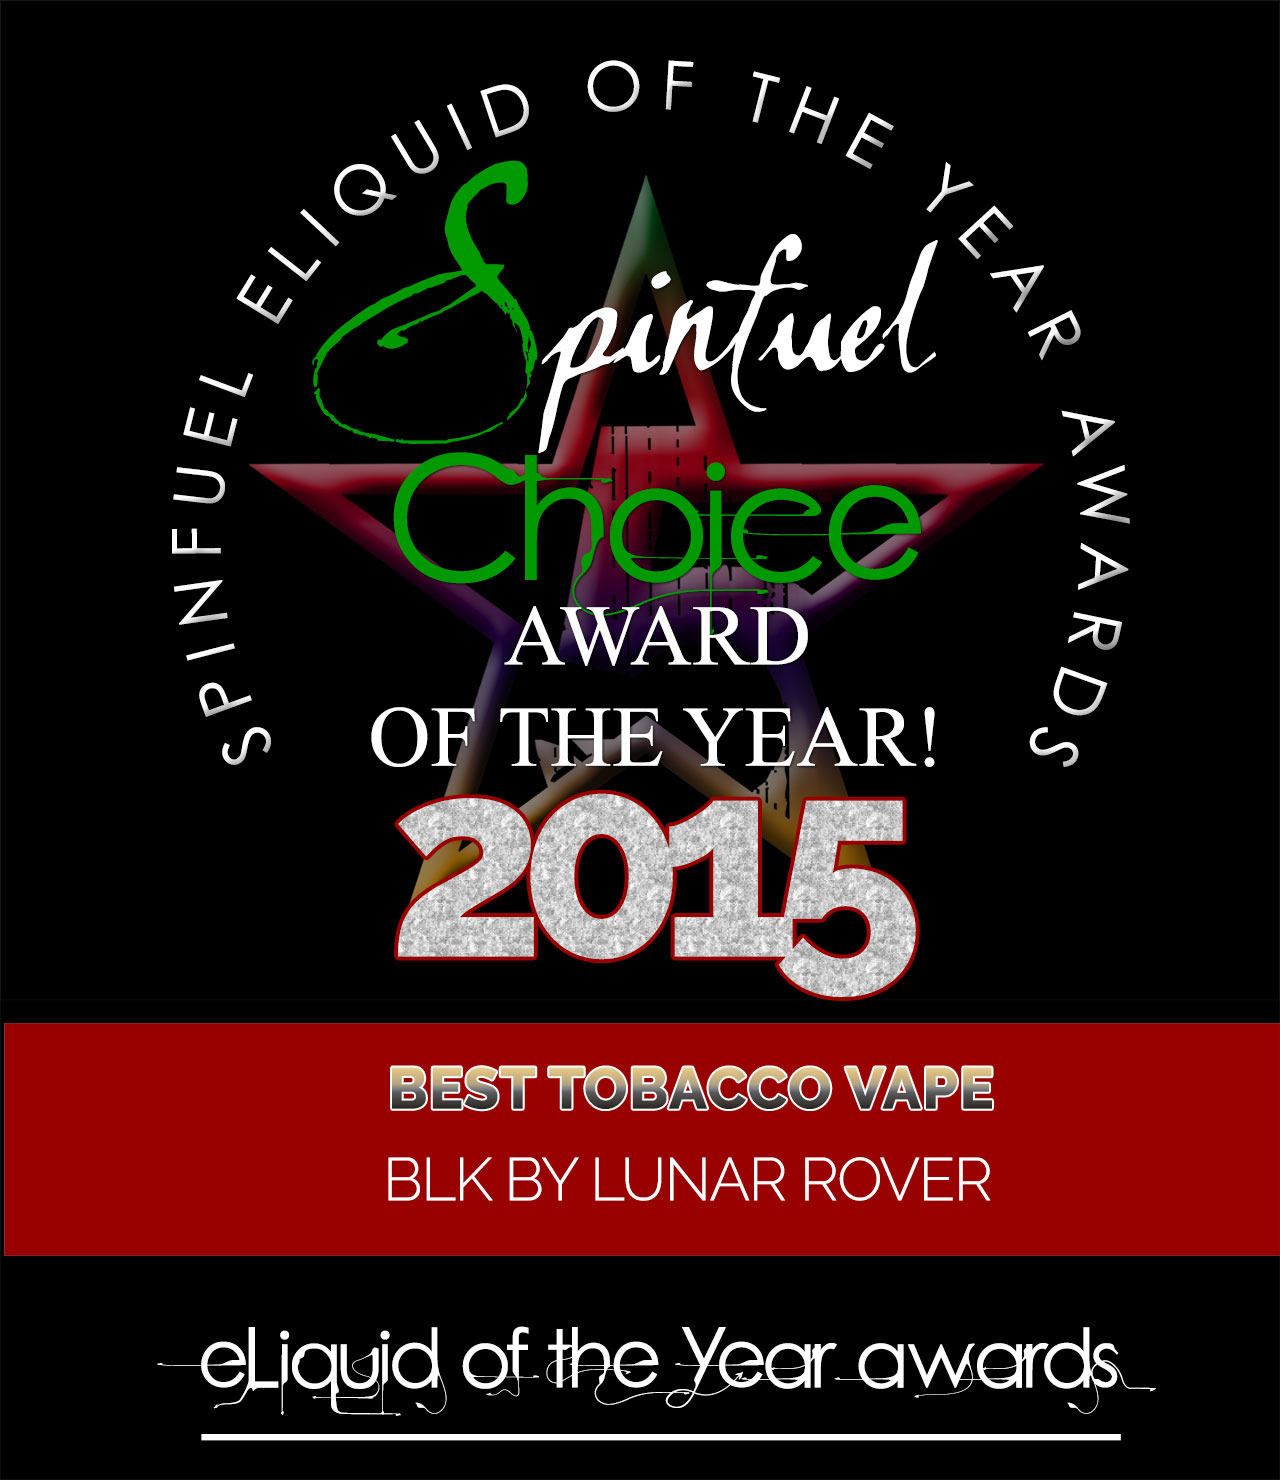 BEST-TOBACCO-BLK Spinfuel Choice Award